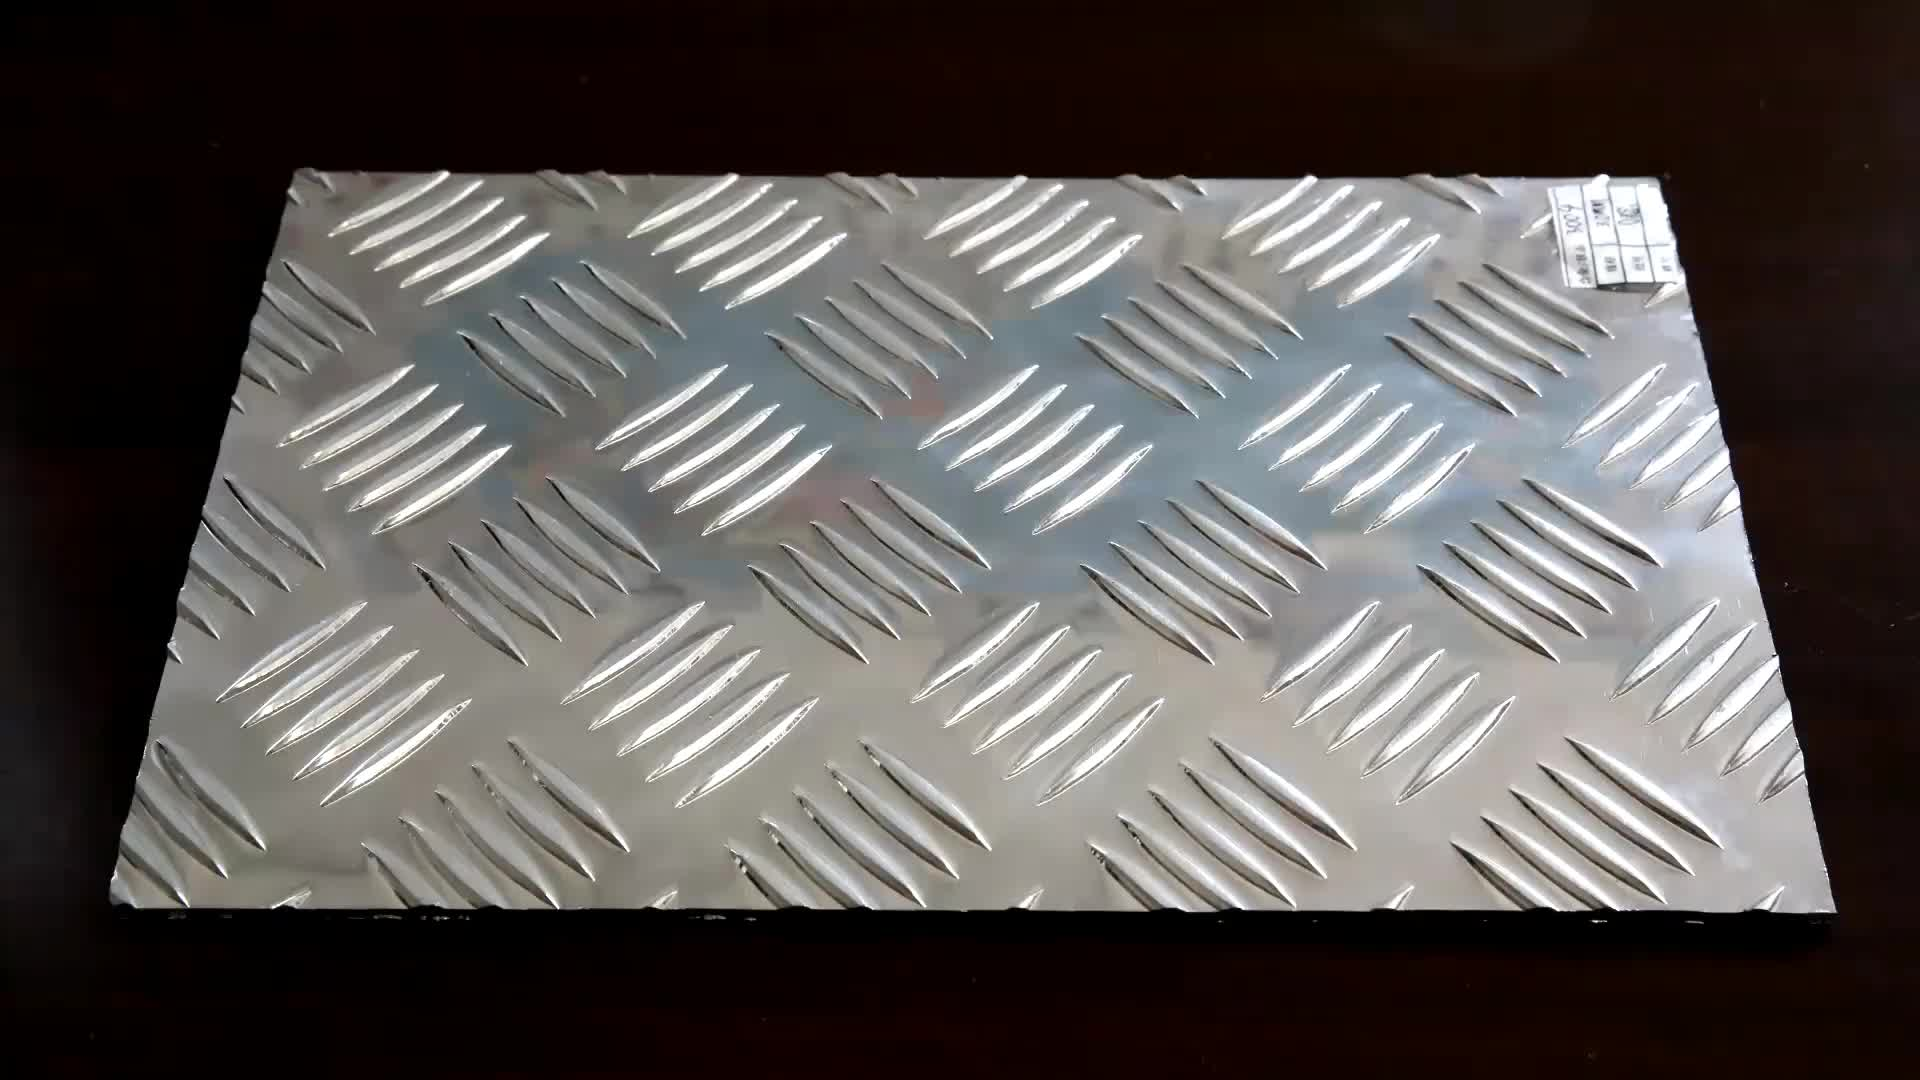 Factory Price 5 bar Aluminum Chequered Plate and Sheet Weight